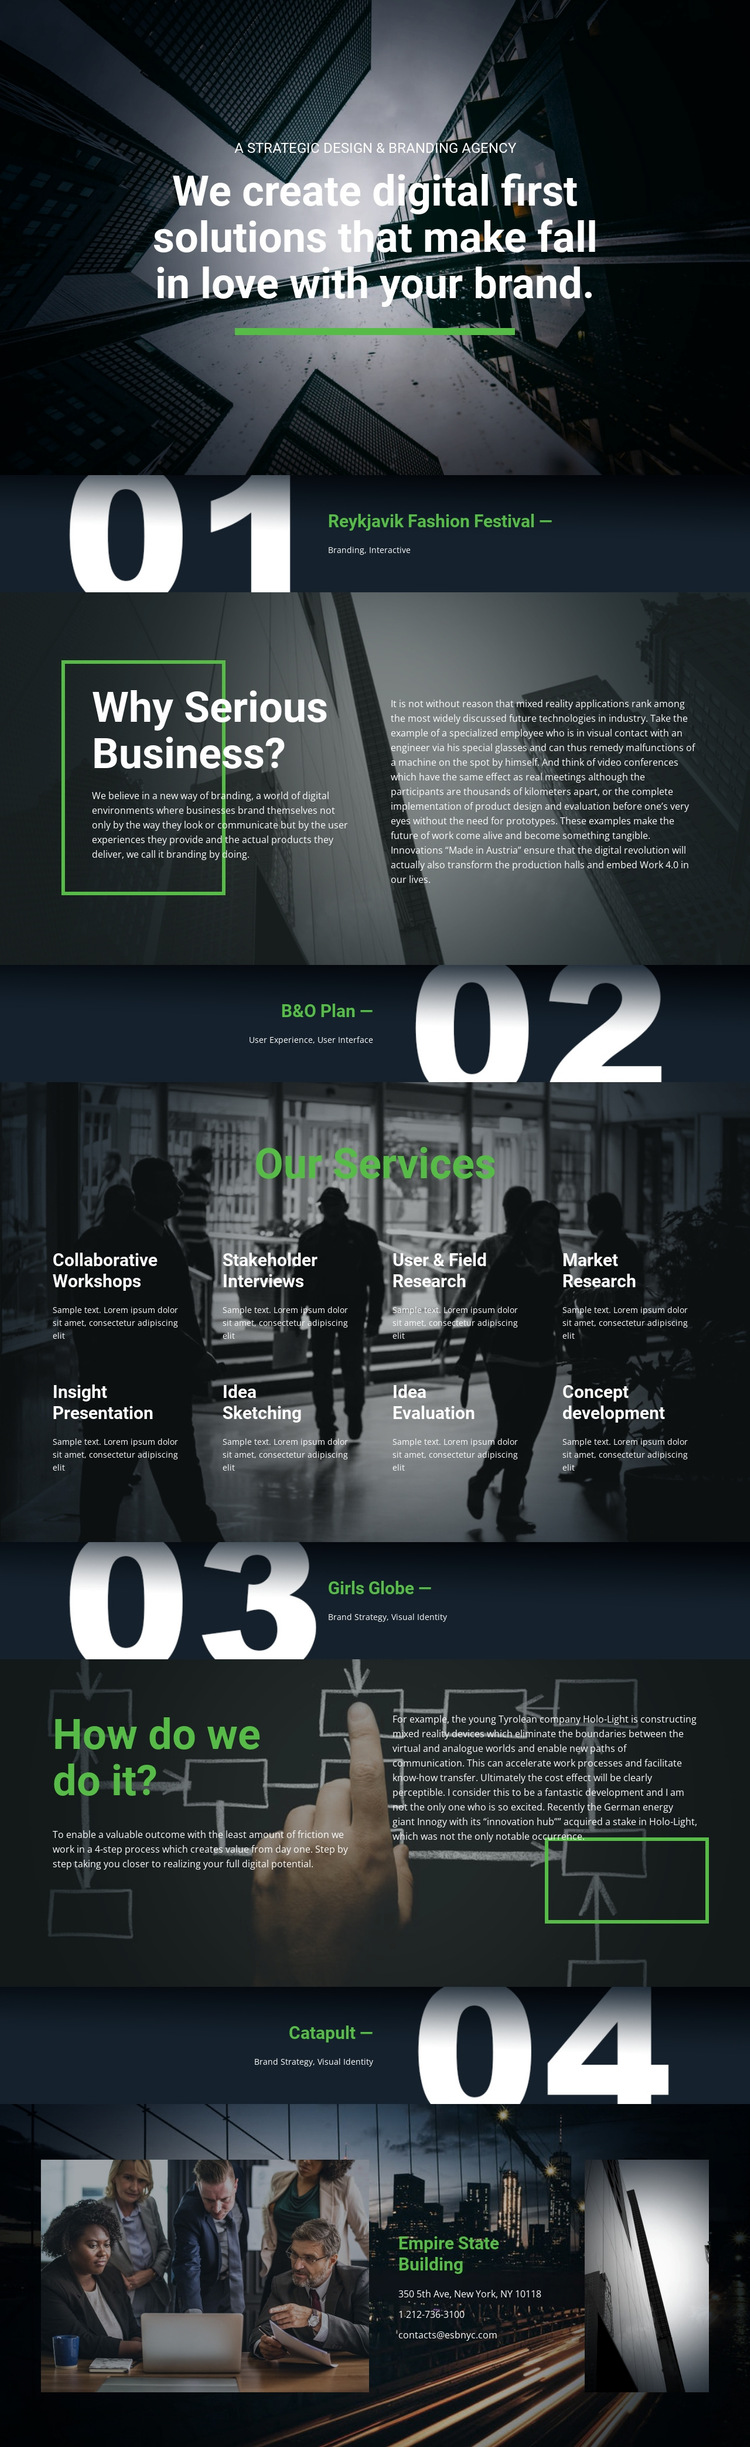 Digital first solutions HTML5 Template